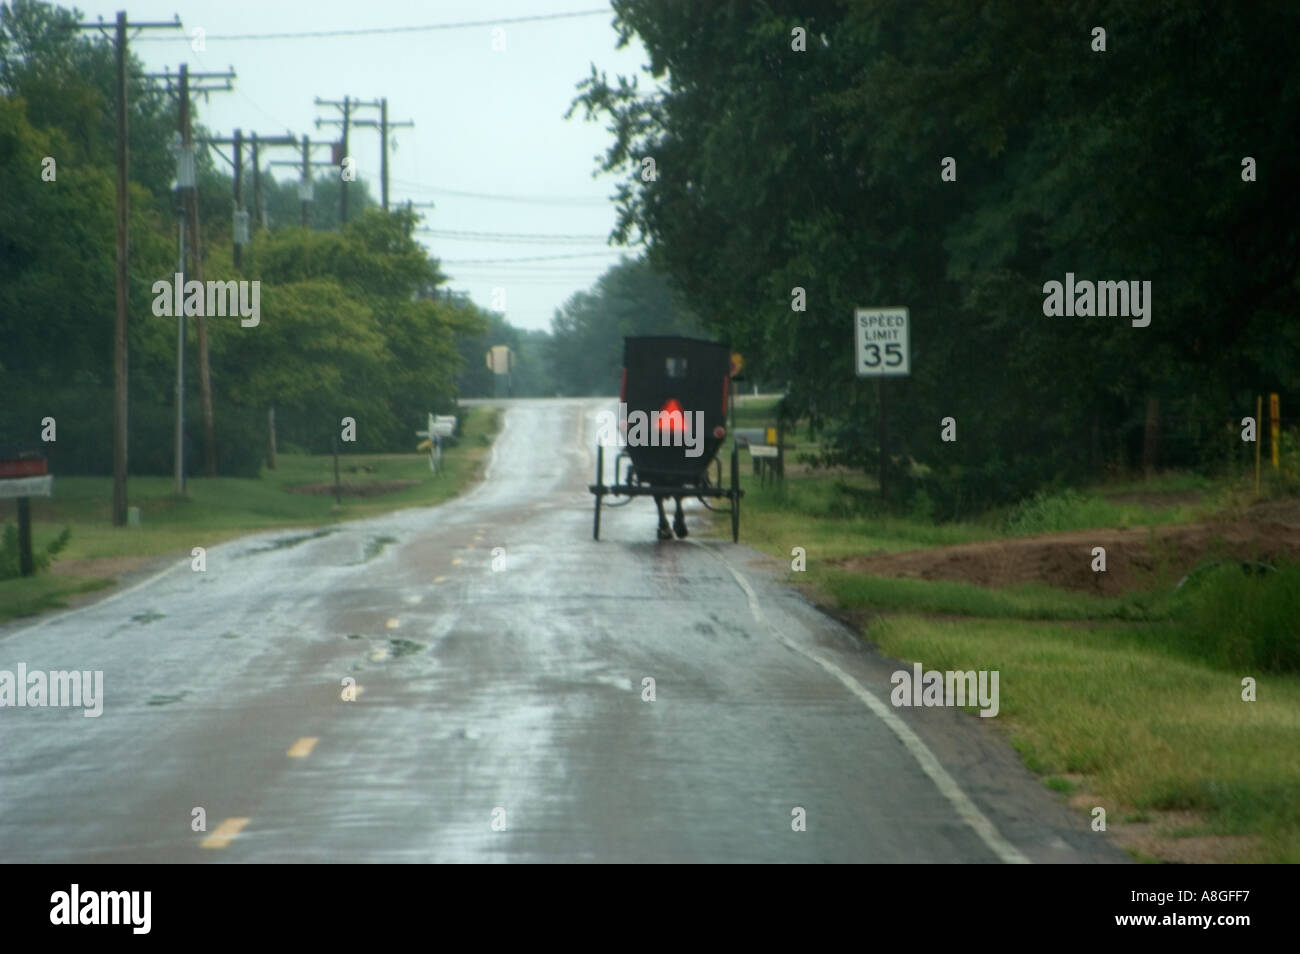 Soft Focus View of Amish Carriage through Vehicle Windshield on Rain Slicked Road Stock Photo